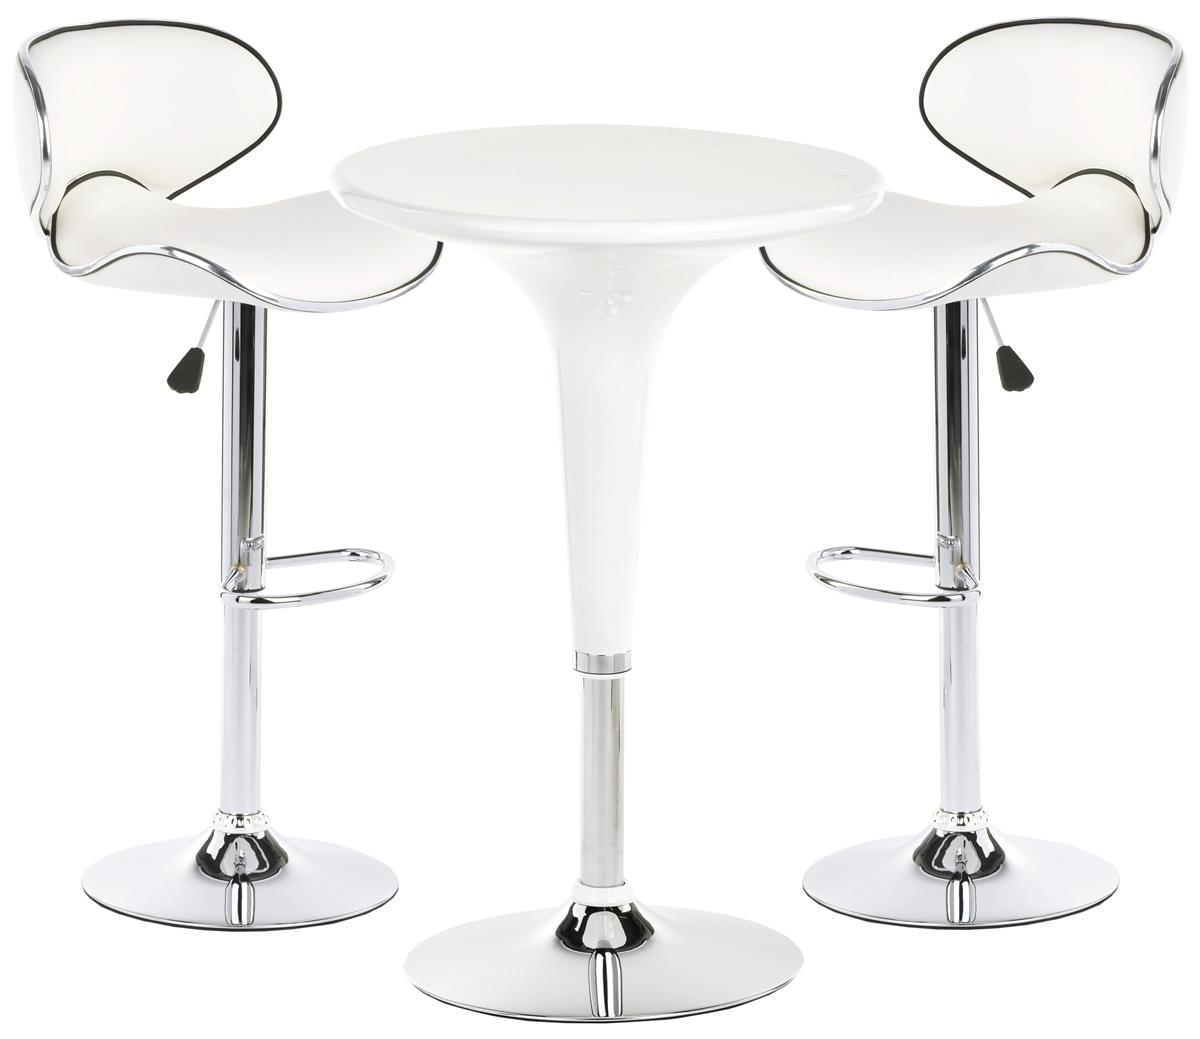 Cocktail table with stools 3 piece event furniture set watchthetrailerfo